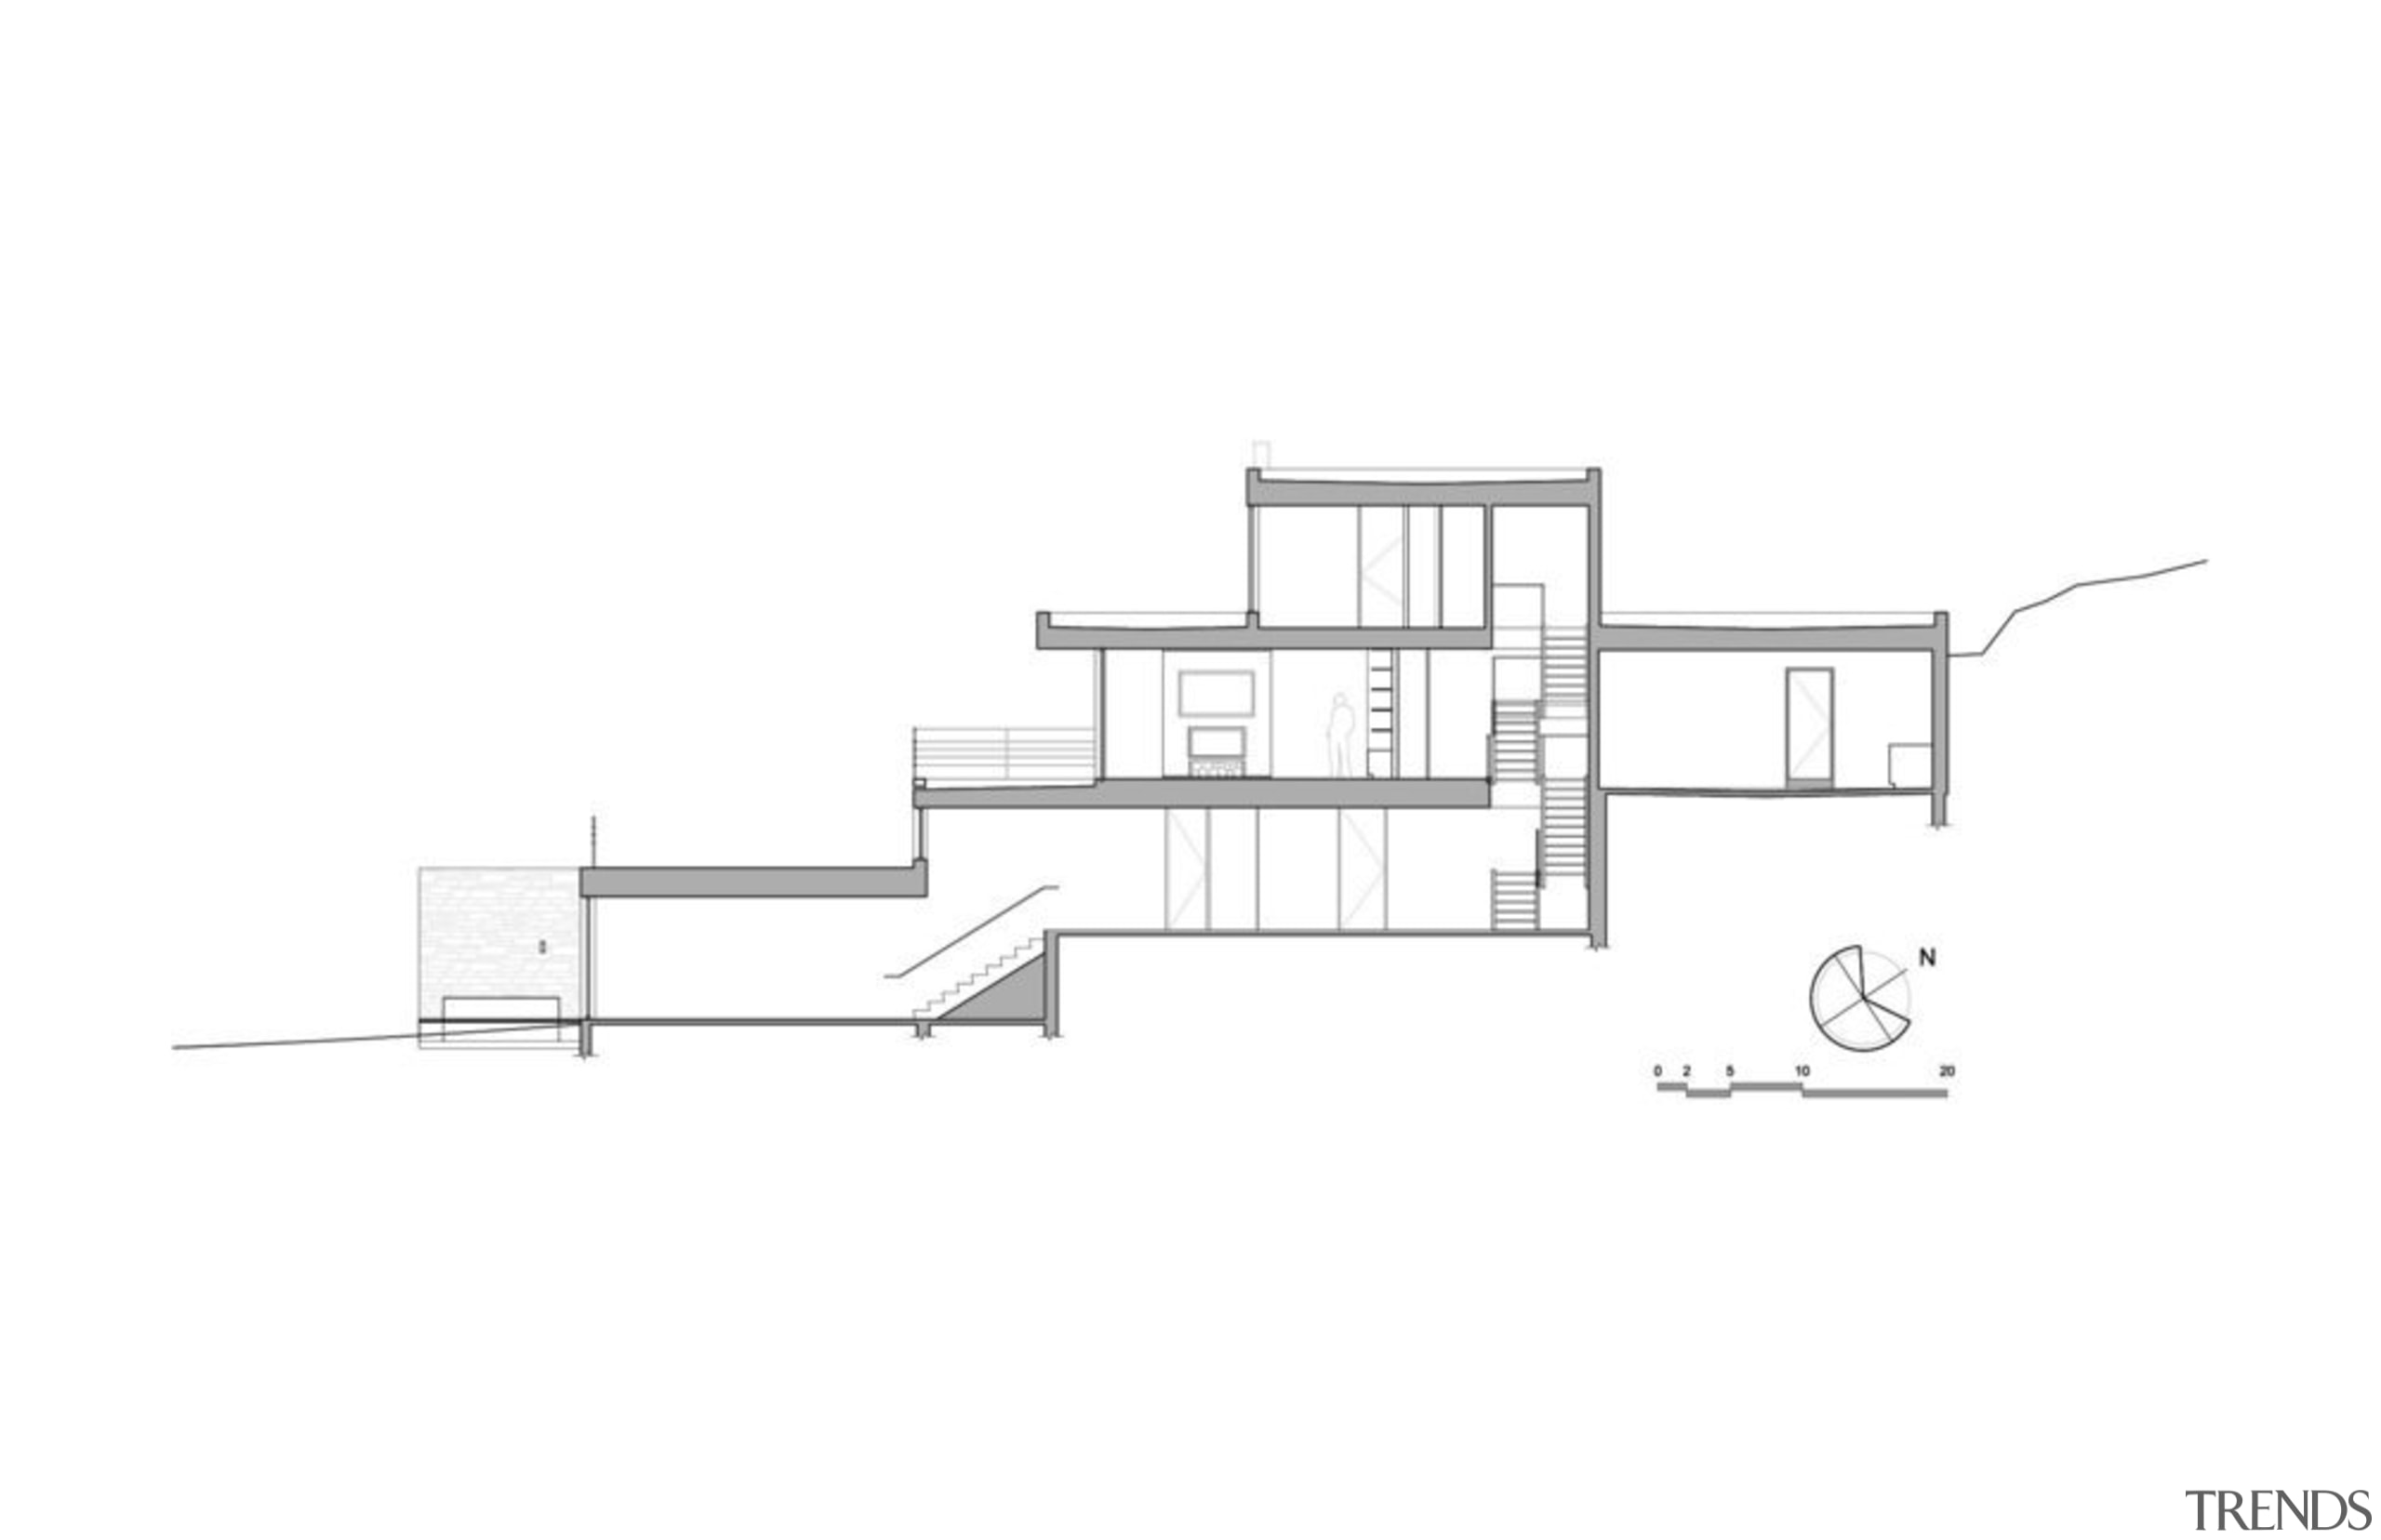 Estrade Residence – cross section - Estrade Residence angle, architecture, area, design, diagram, drawing, elevation, facade, floor plan, font, home, house, line, plan, product, product design, structure, white